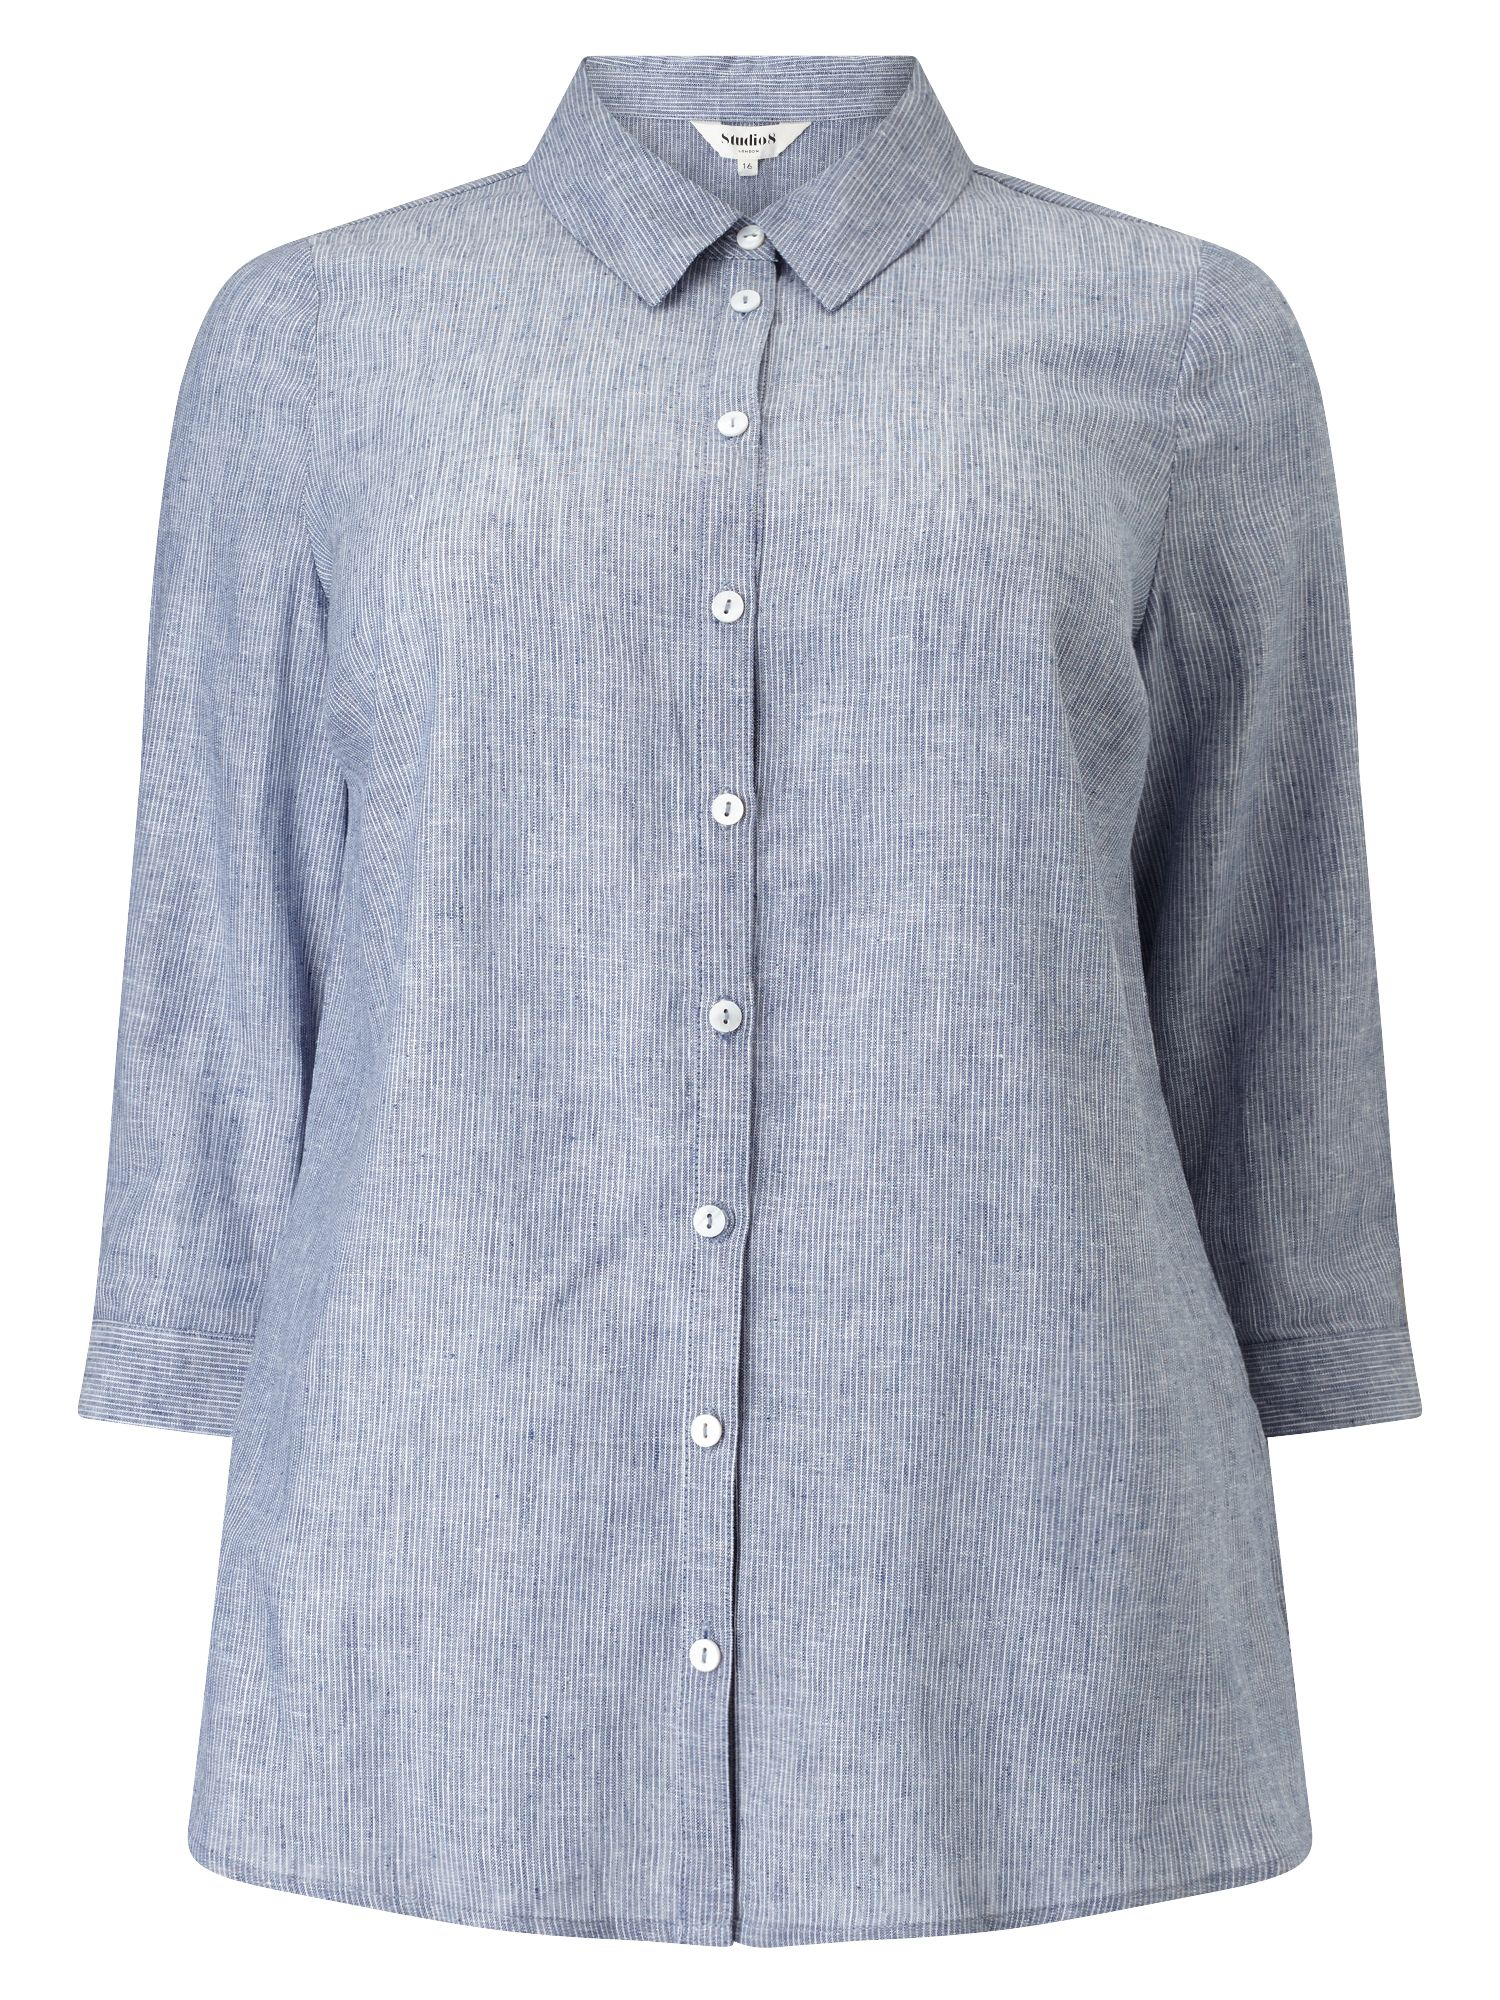 Studio 8 Lacey Shirt, Blue